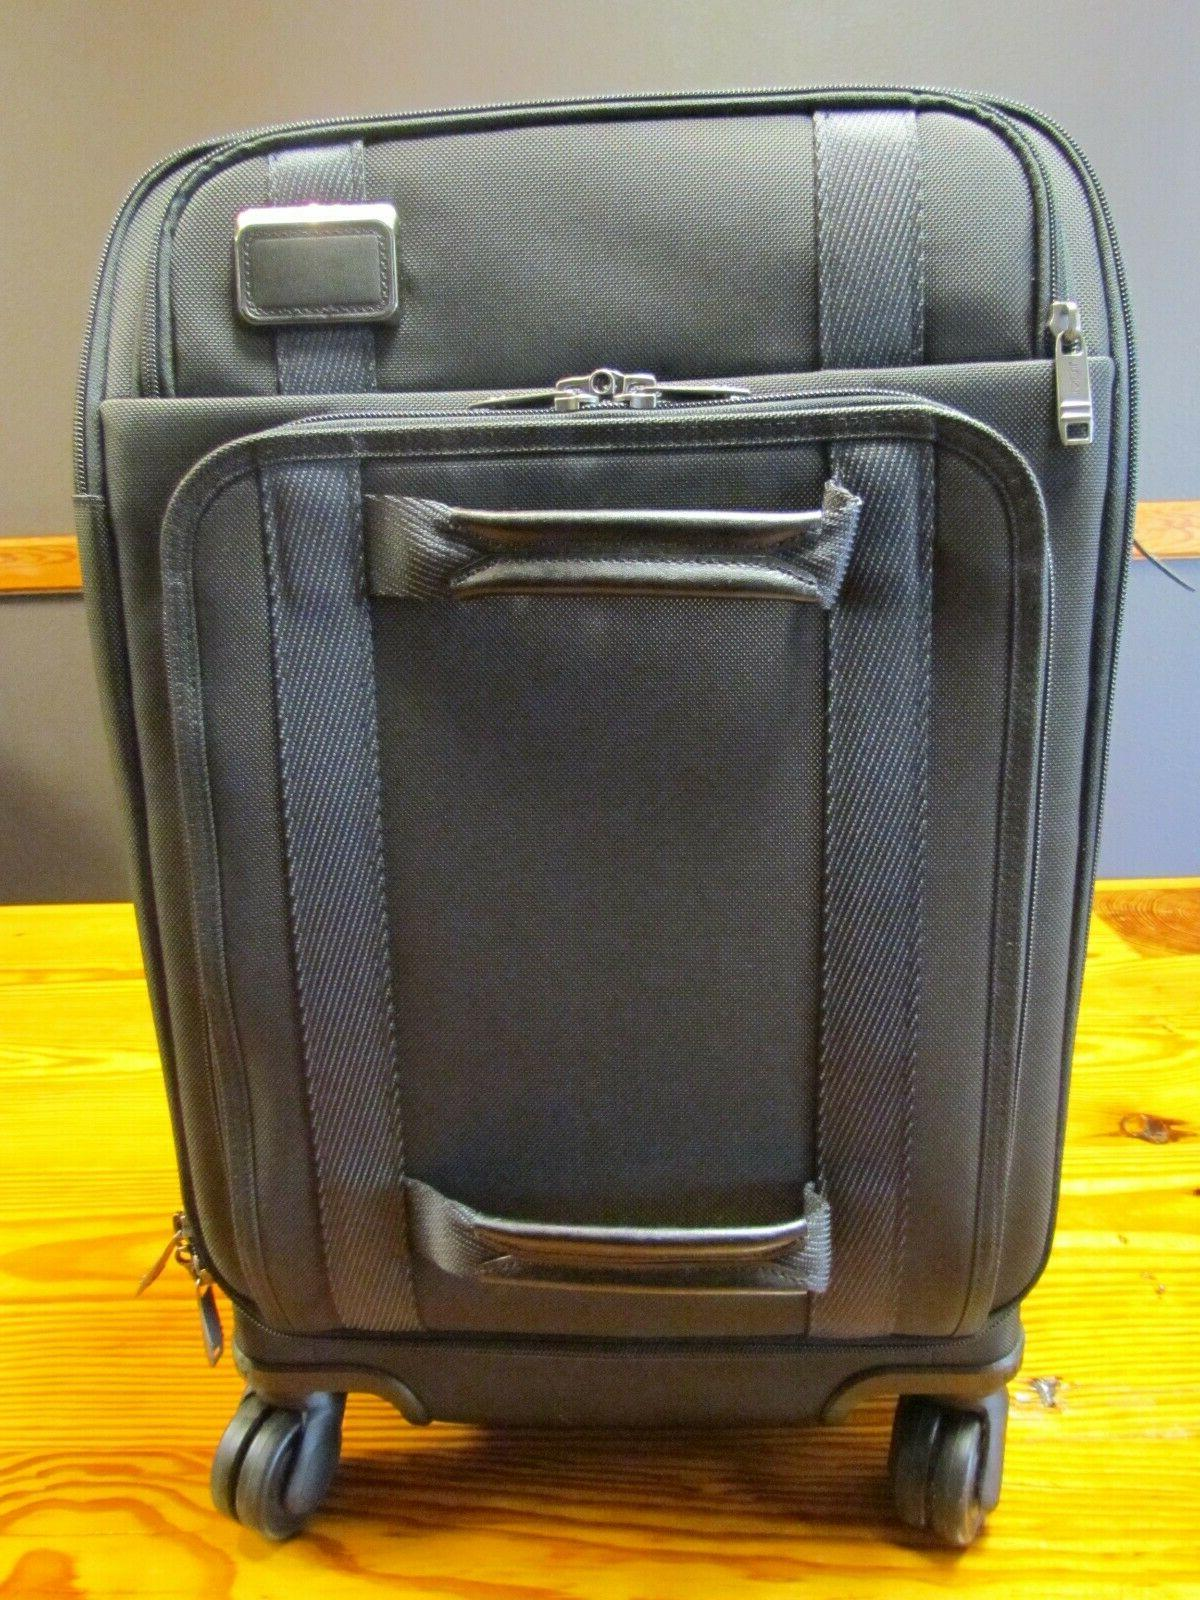 international front lid 4 wheel carry on